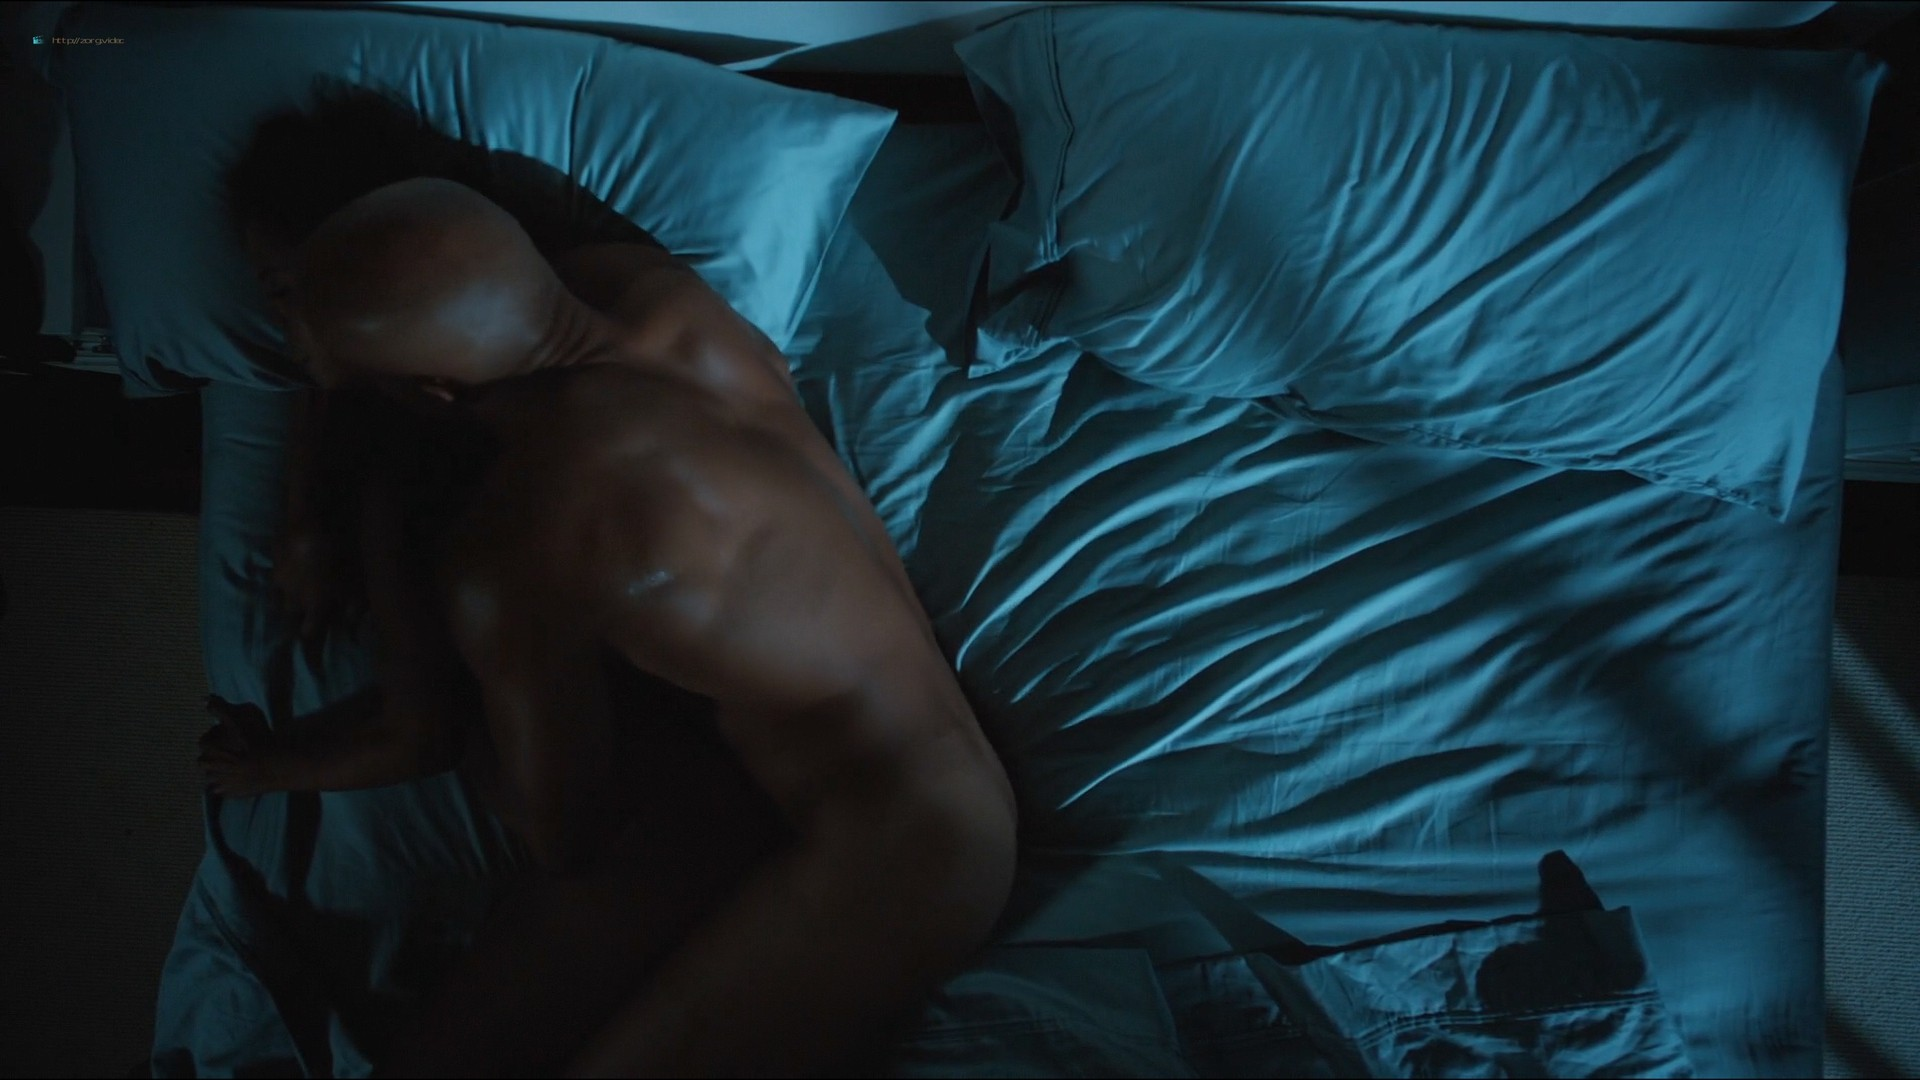 Sharon Leal nude and lot of sex others nude too - Addicted (2014) HD 1080p (18)